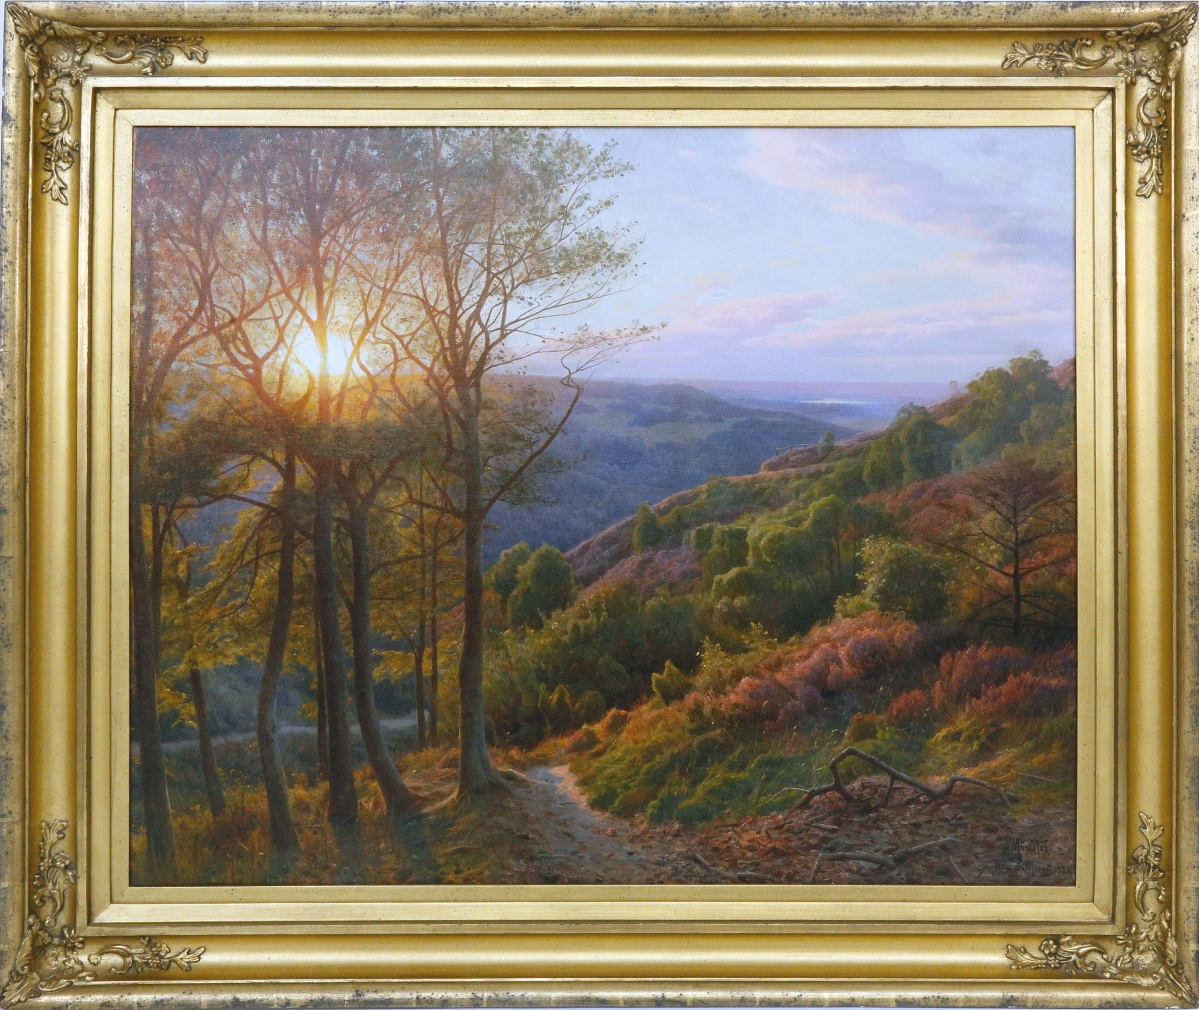 """The second highest price in the sale — $18,300 — was shared by two lots, one of which was """"View from Himmelbjoerget, Sun Streaming Through the Trees"""" by Danish painter Peder Mork Monsted (1859-1941). Measuring 36½ by 44½ inches, the painting sold to a buyer in the Rocky Mountains who outbid two phone bidders from Germany ($5/7,000)."""